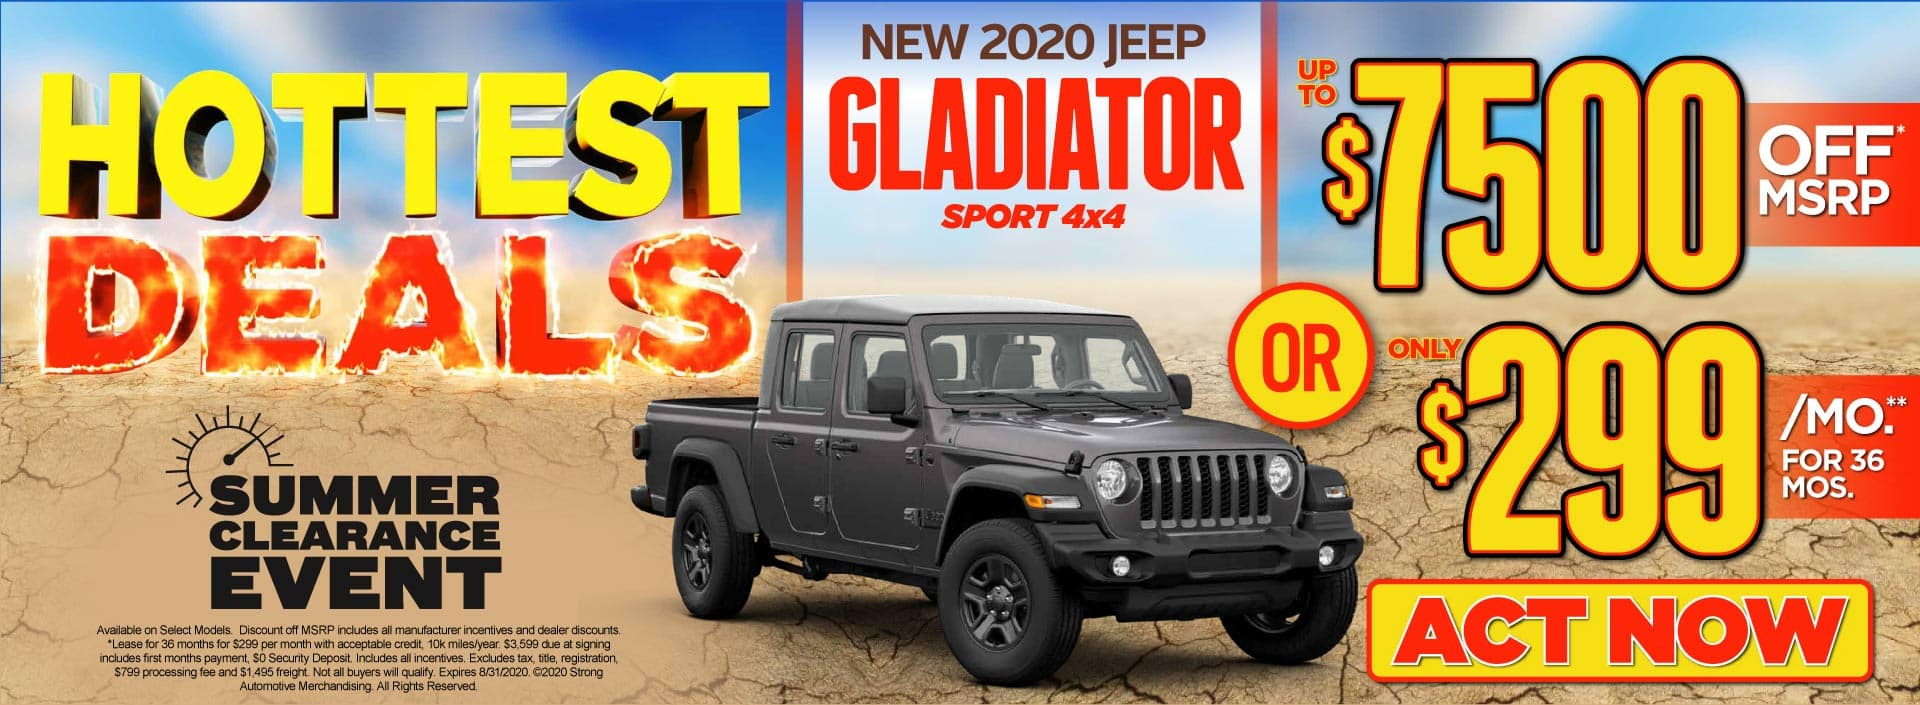 New 2020 Jeep Gladiator - up to $7500 off MSRP* or just $299 per month** - Click to View Inventory